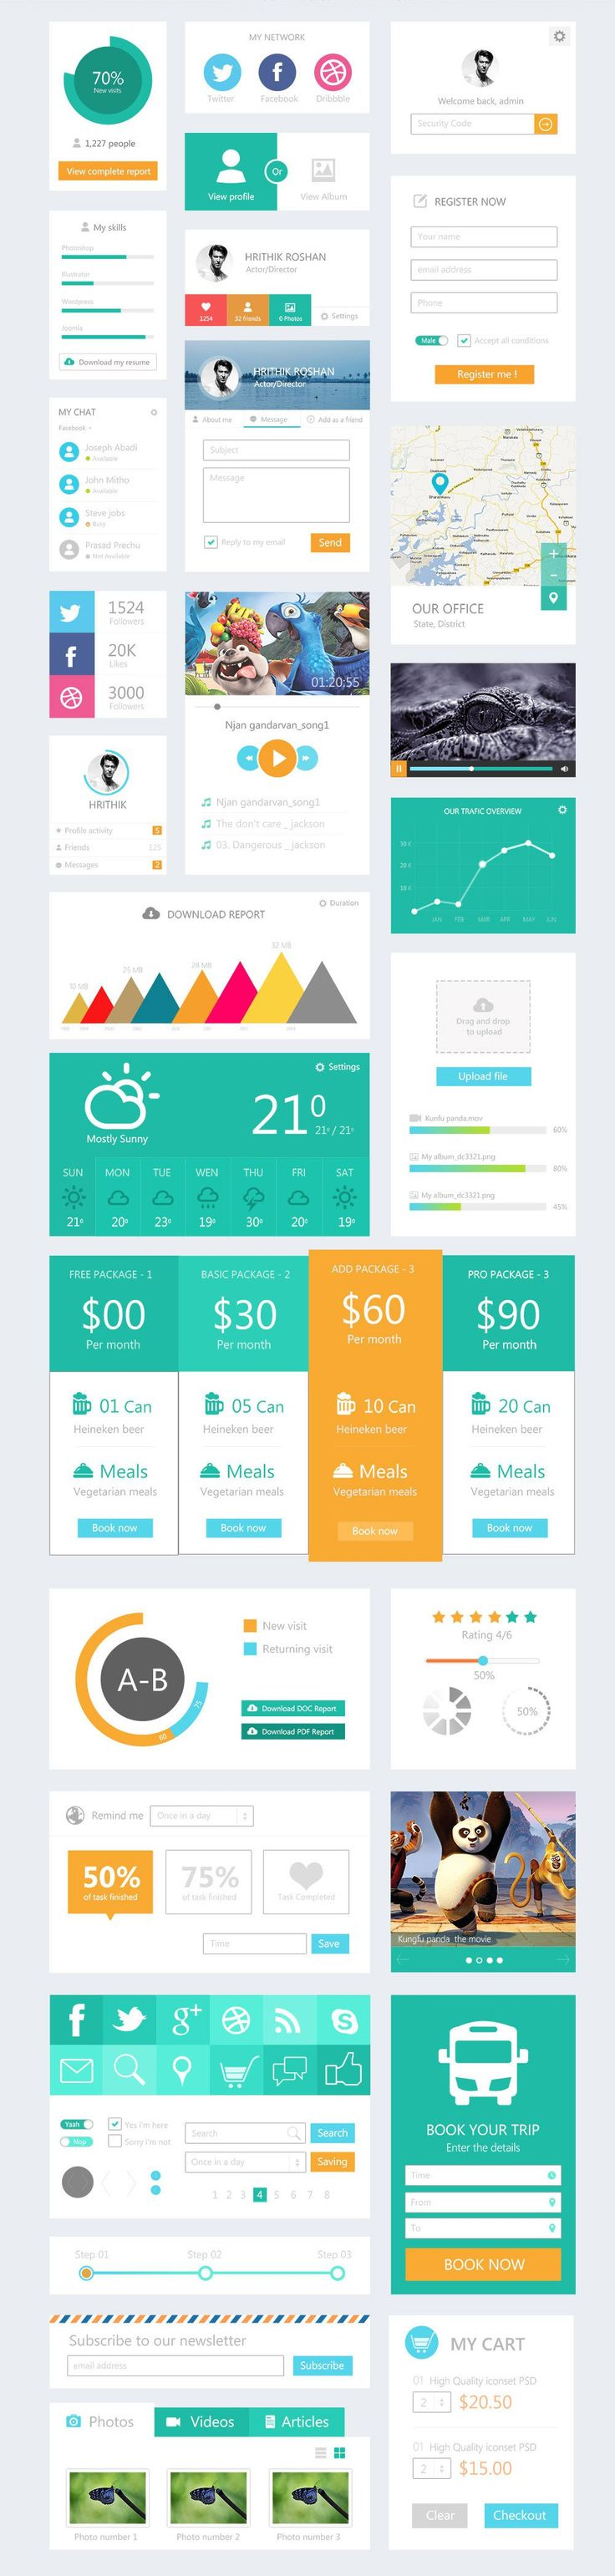 Free Flat UI Kit, #Buttons, #Cart, #Chart, #Chat, #Checkbox, #Dropdown, #Flat…